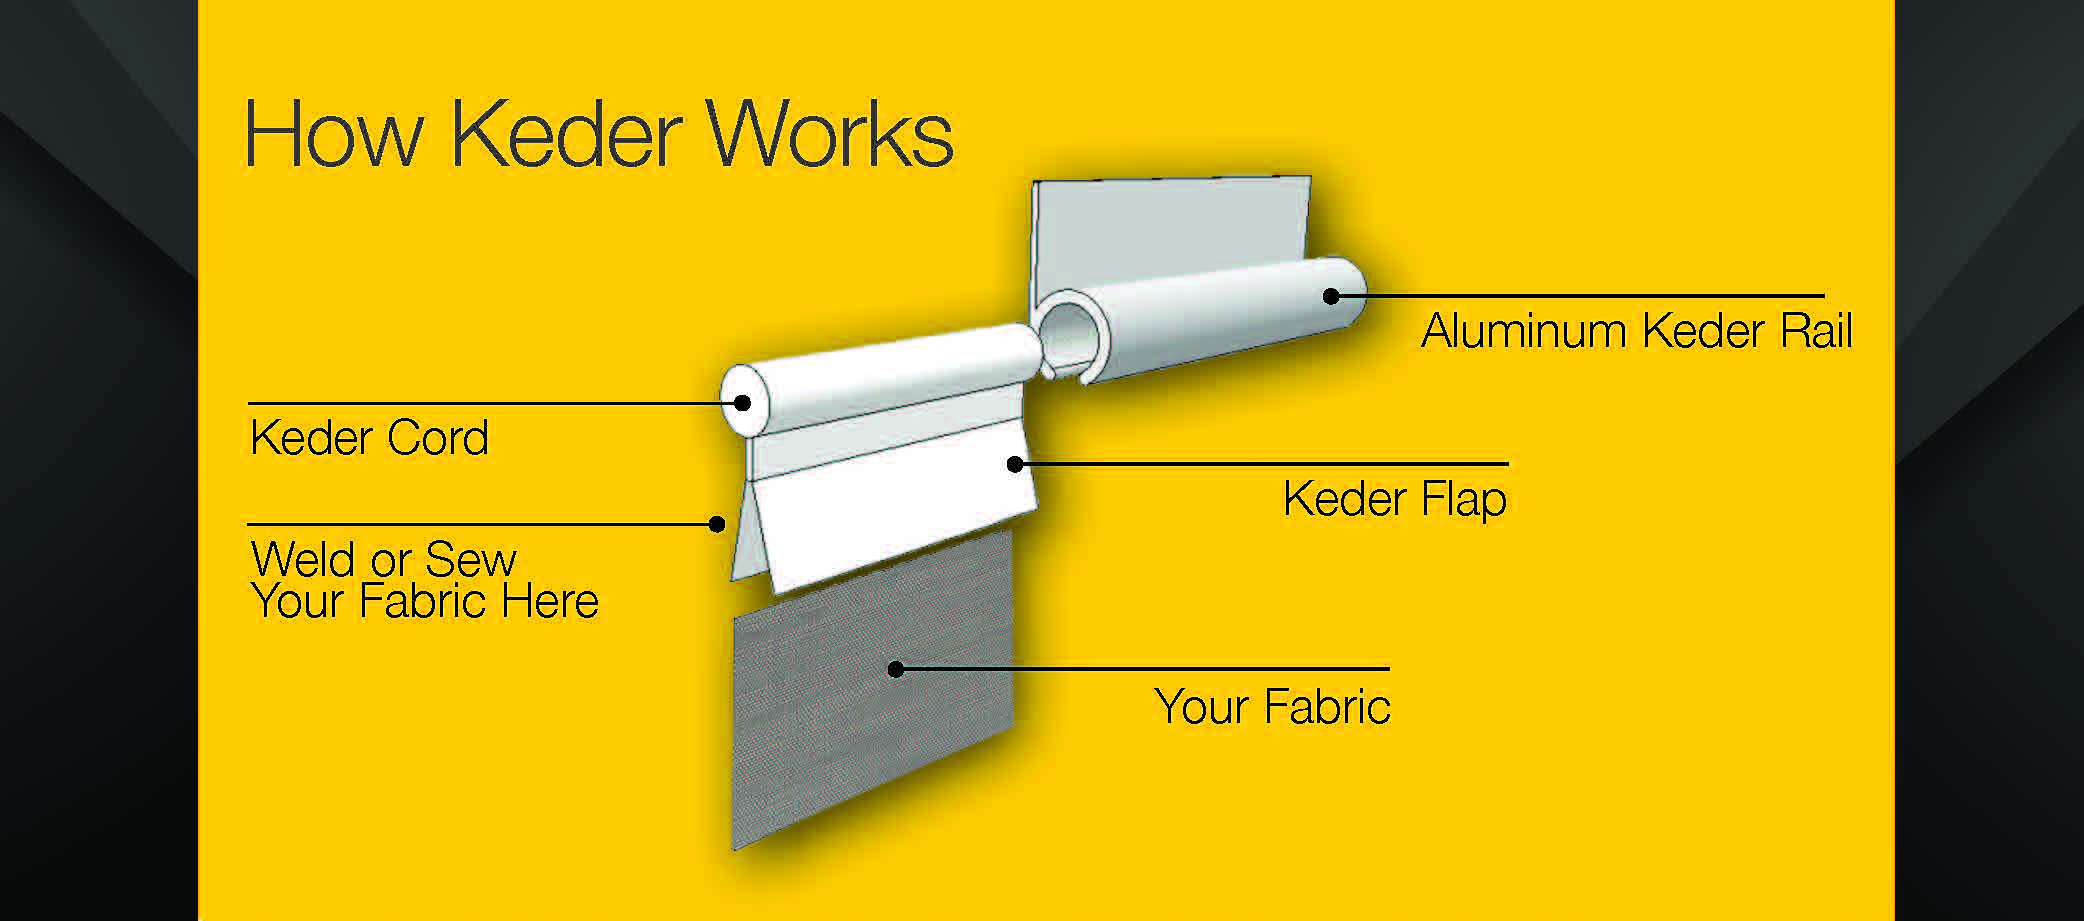 How Keder Work Diagram